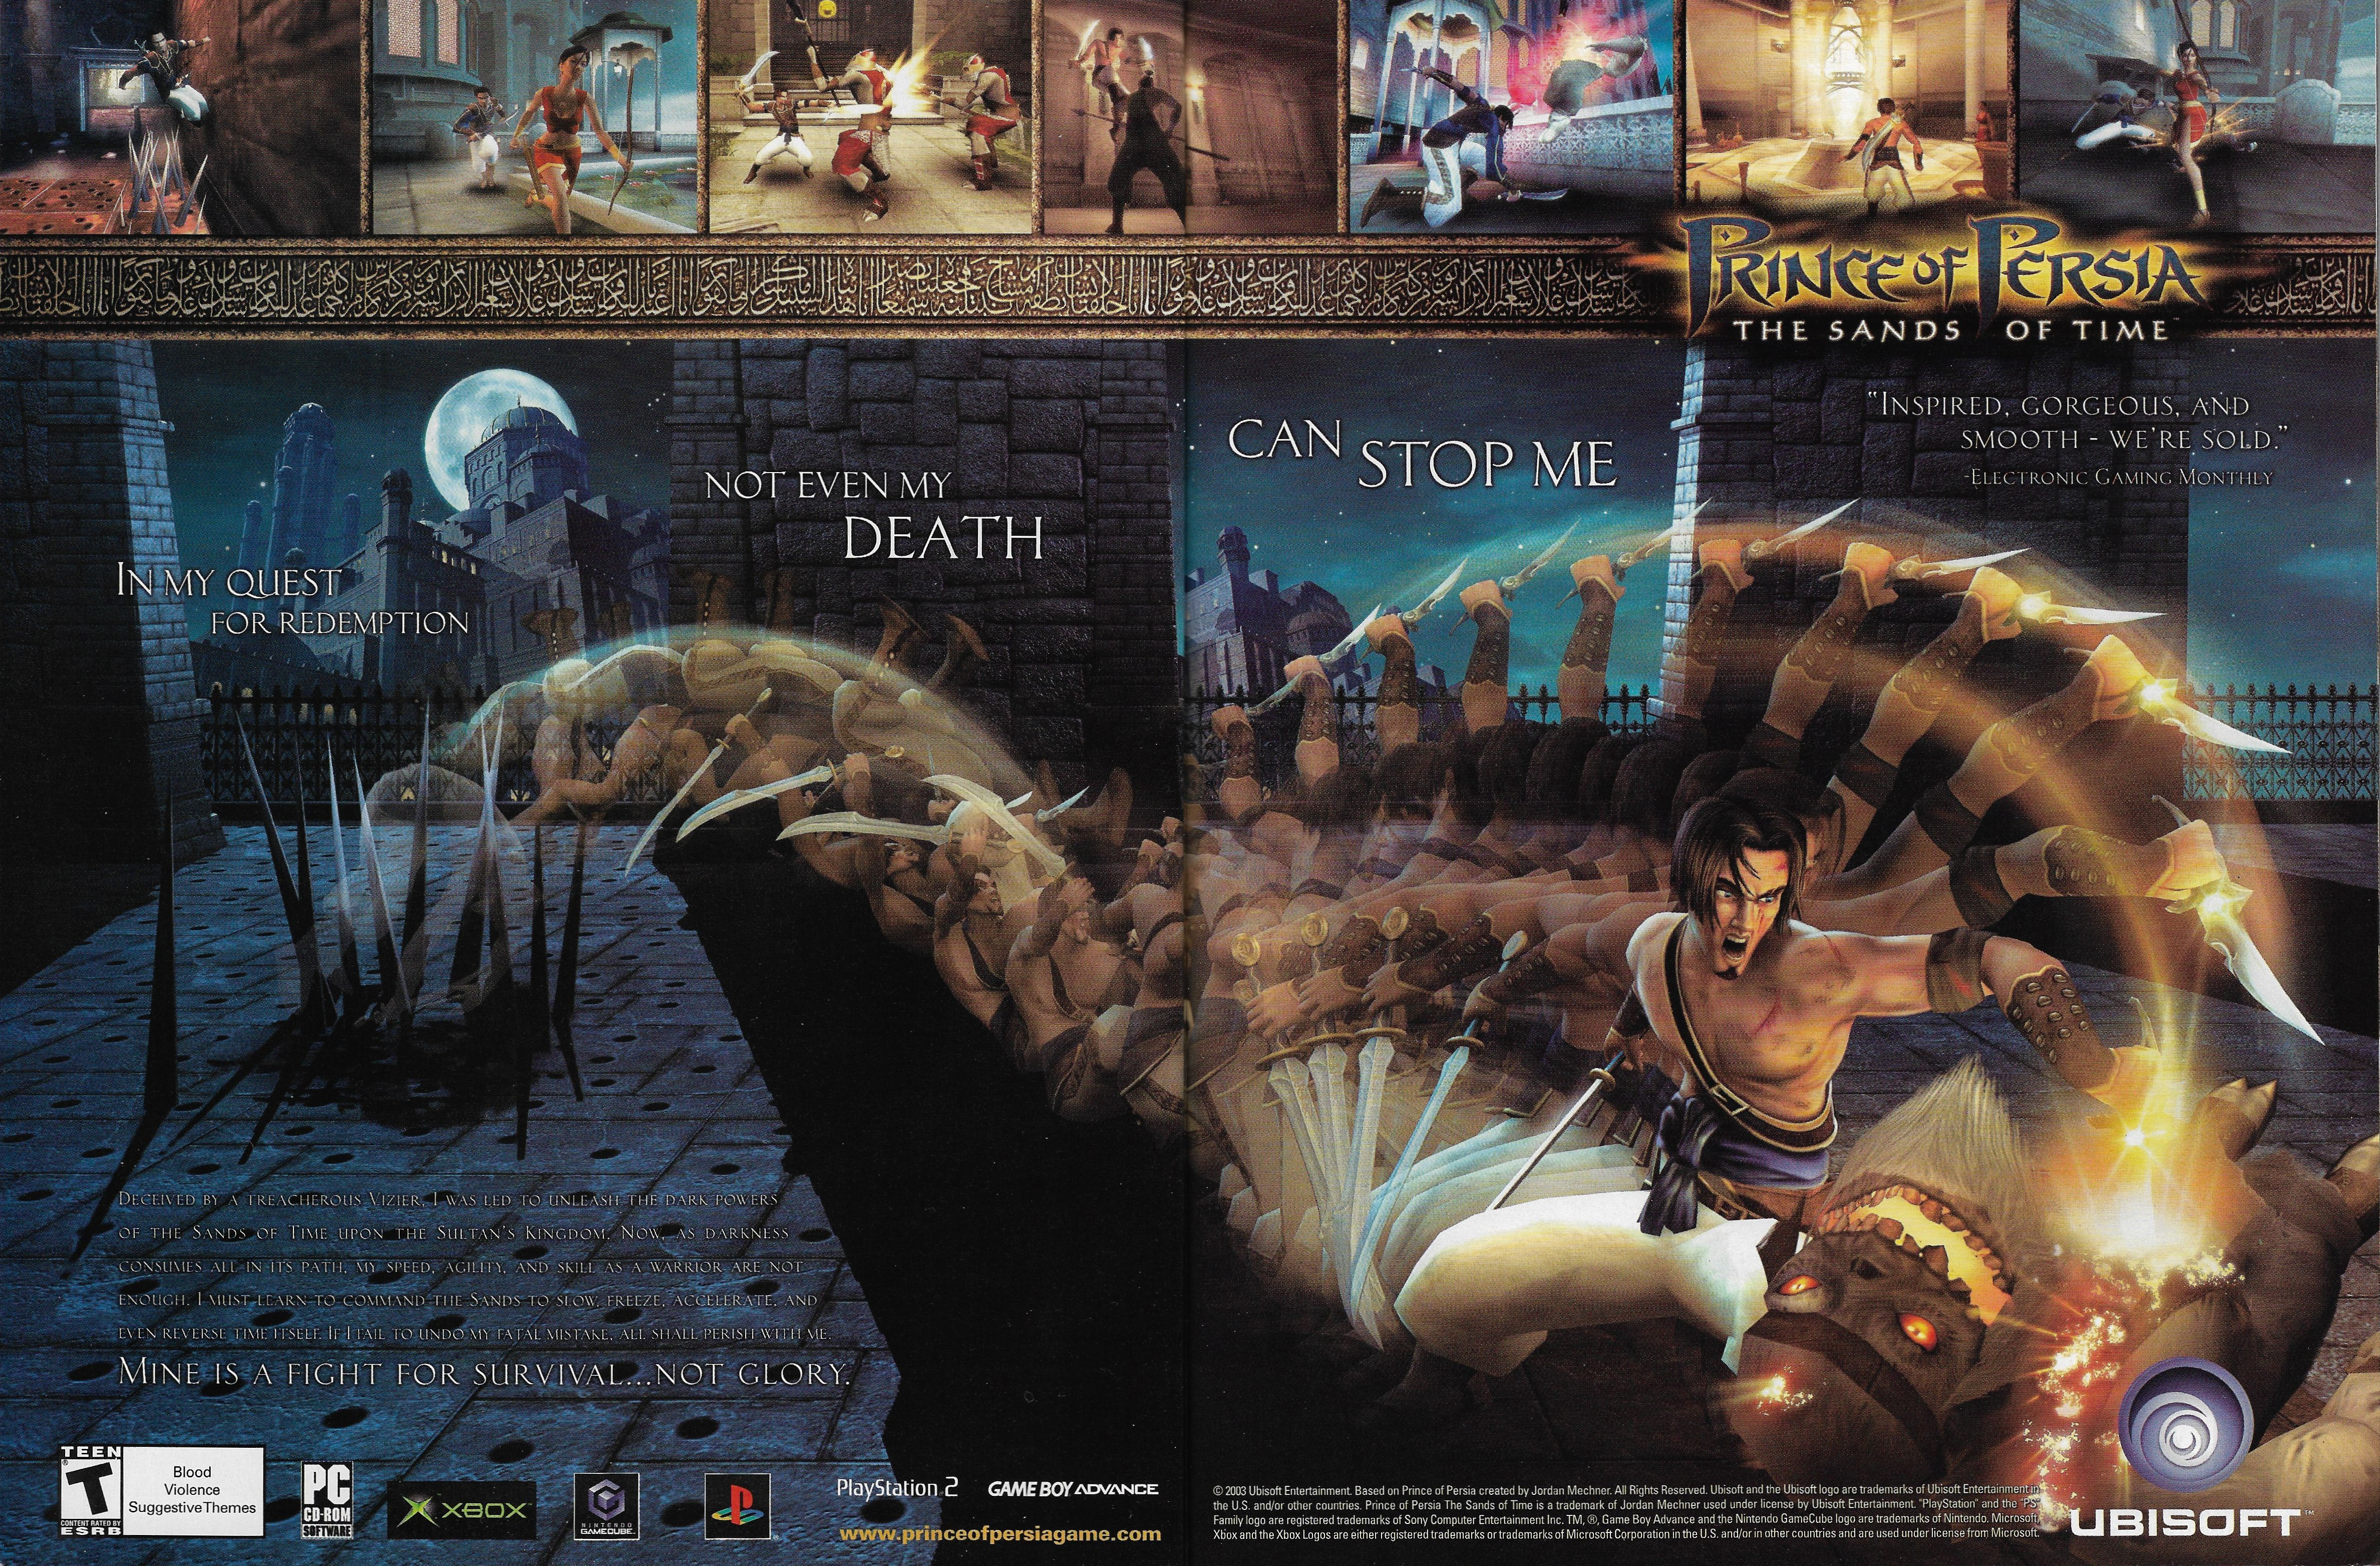 Prince Of Persia The Sands Of Time 2010 Promotional Art Mobygames